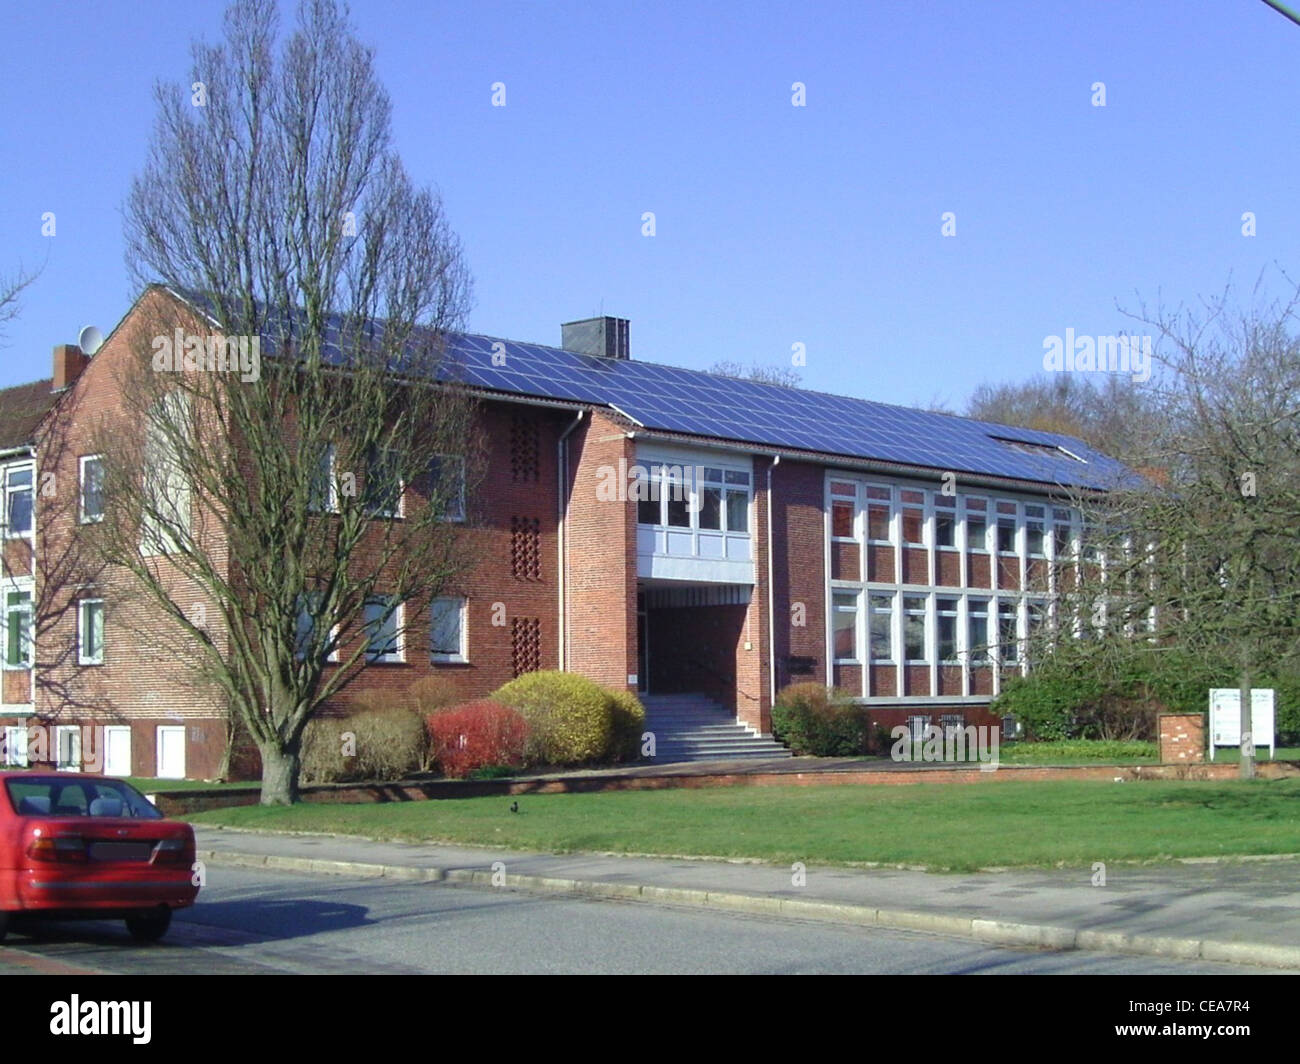 Building with solar panels on the roof in Northern Germany - Stock Image